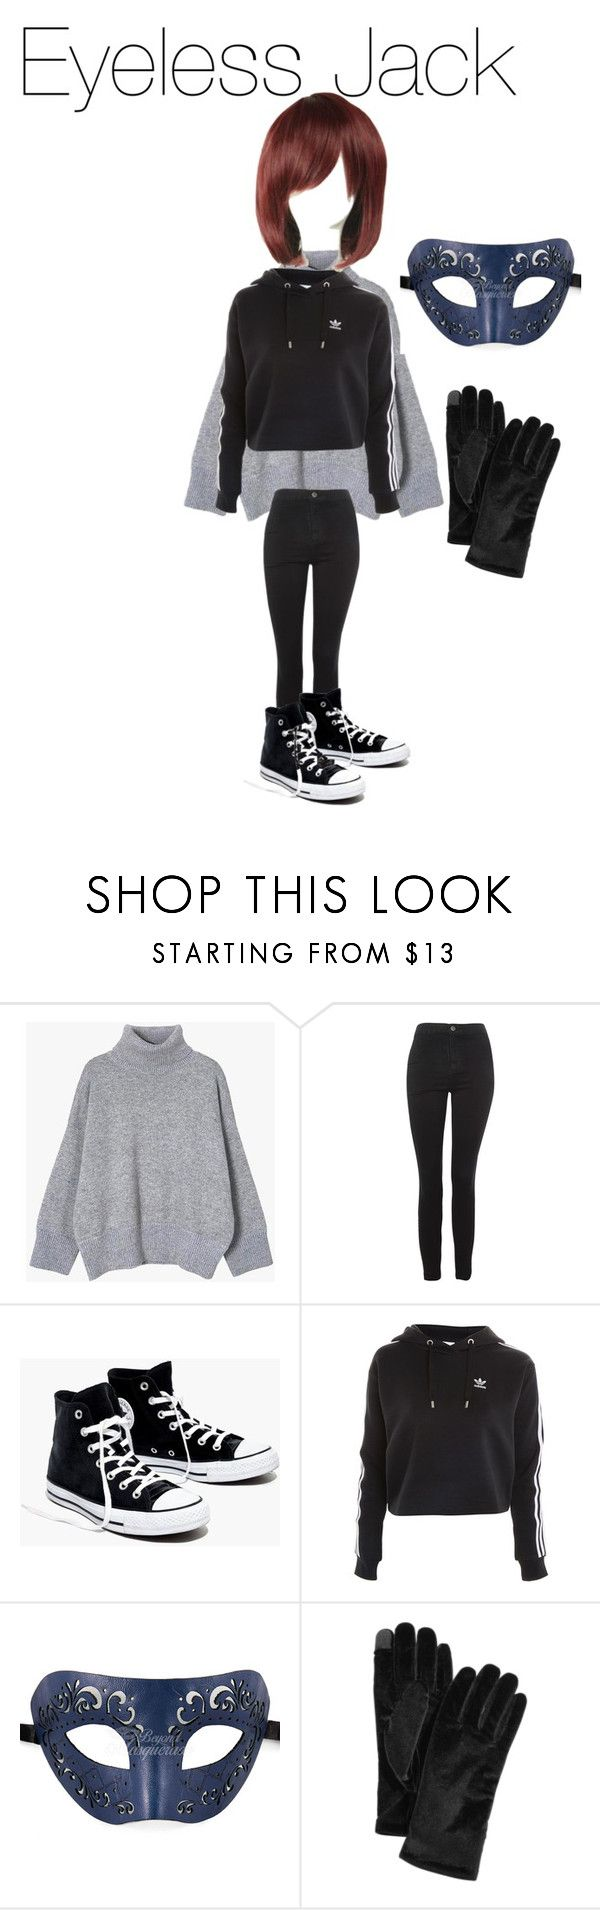 """Eyeless Jack Creepypasta"" by tori-camilleri on Polyvore featuring Topshop, Madewell, Cejon and WithChic"